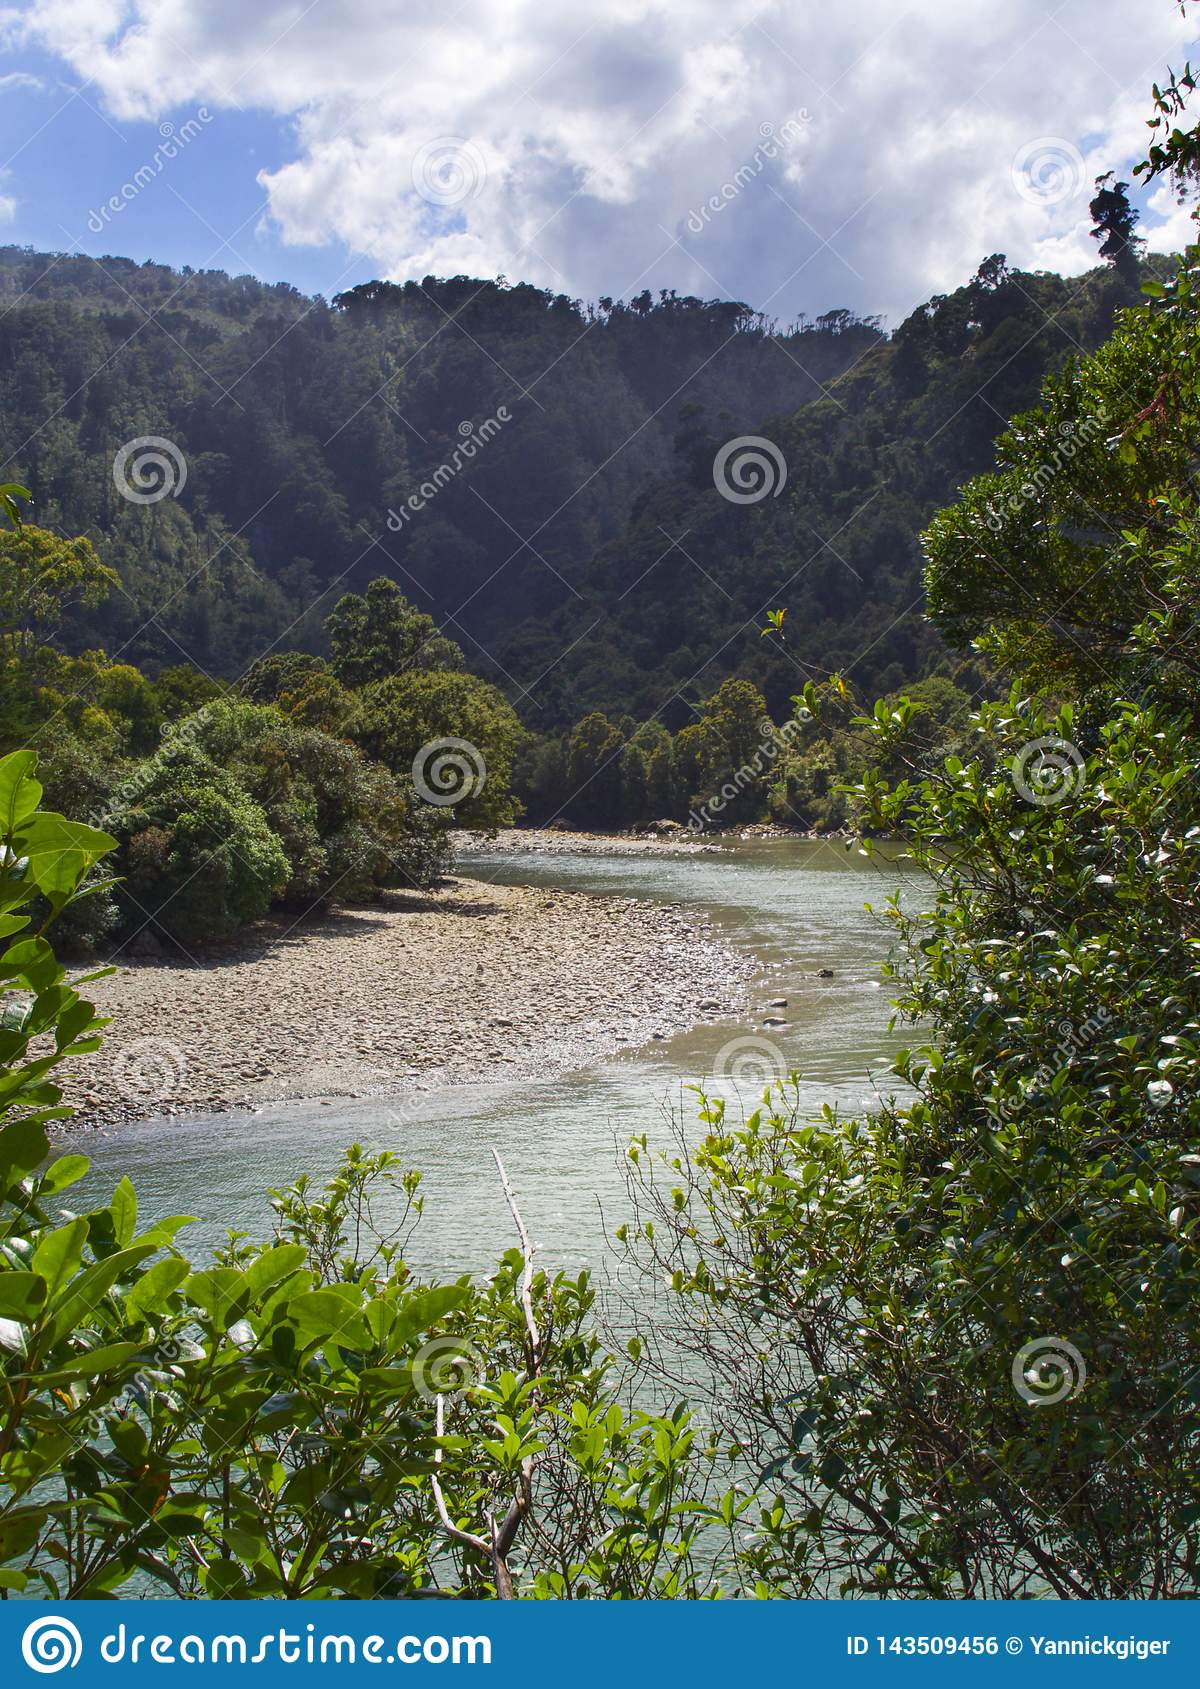 River bends and curves through forested wilderness in New Zealand